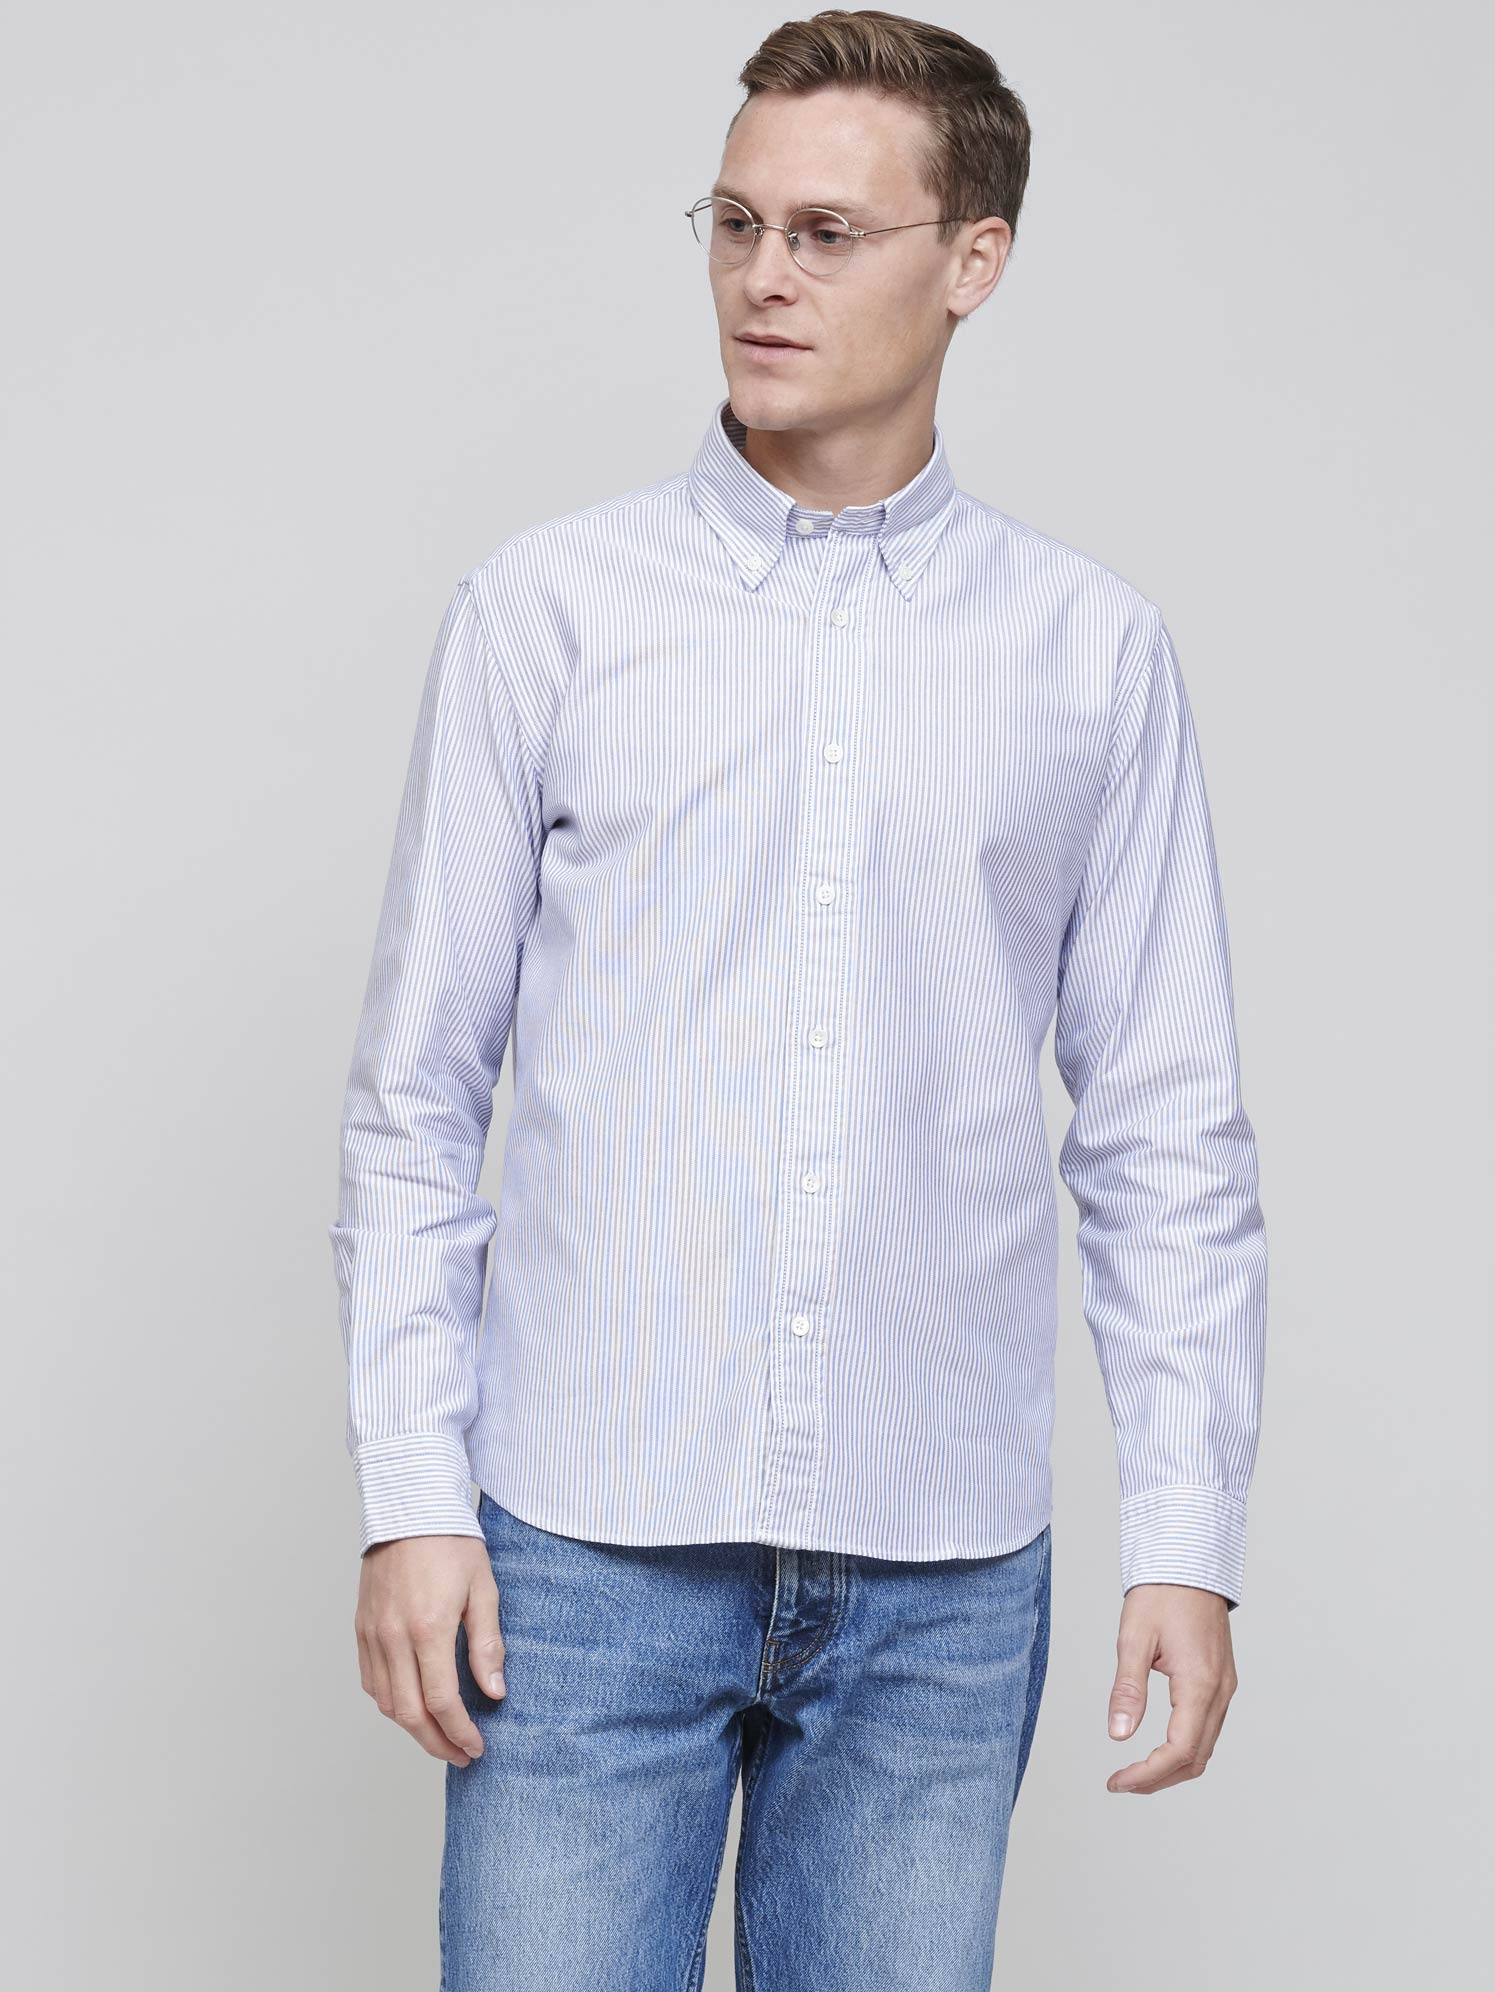 New BD Shirt, Mid Blue Oxford Stripe